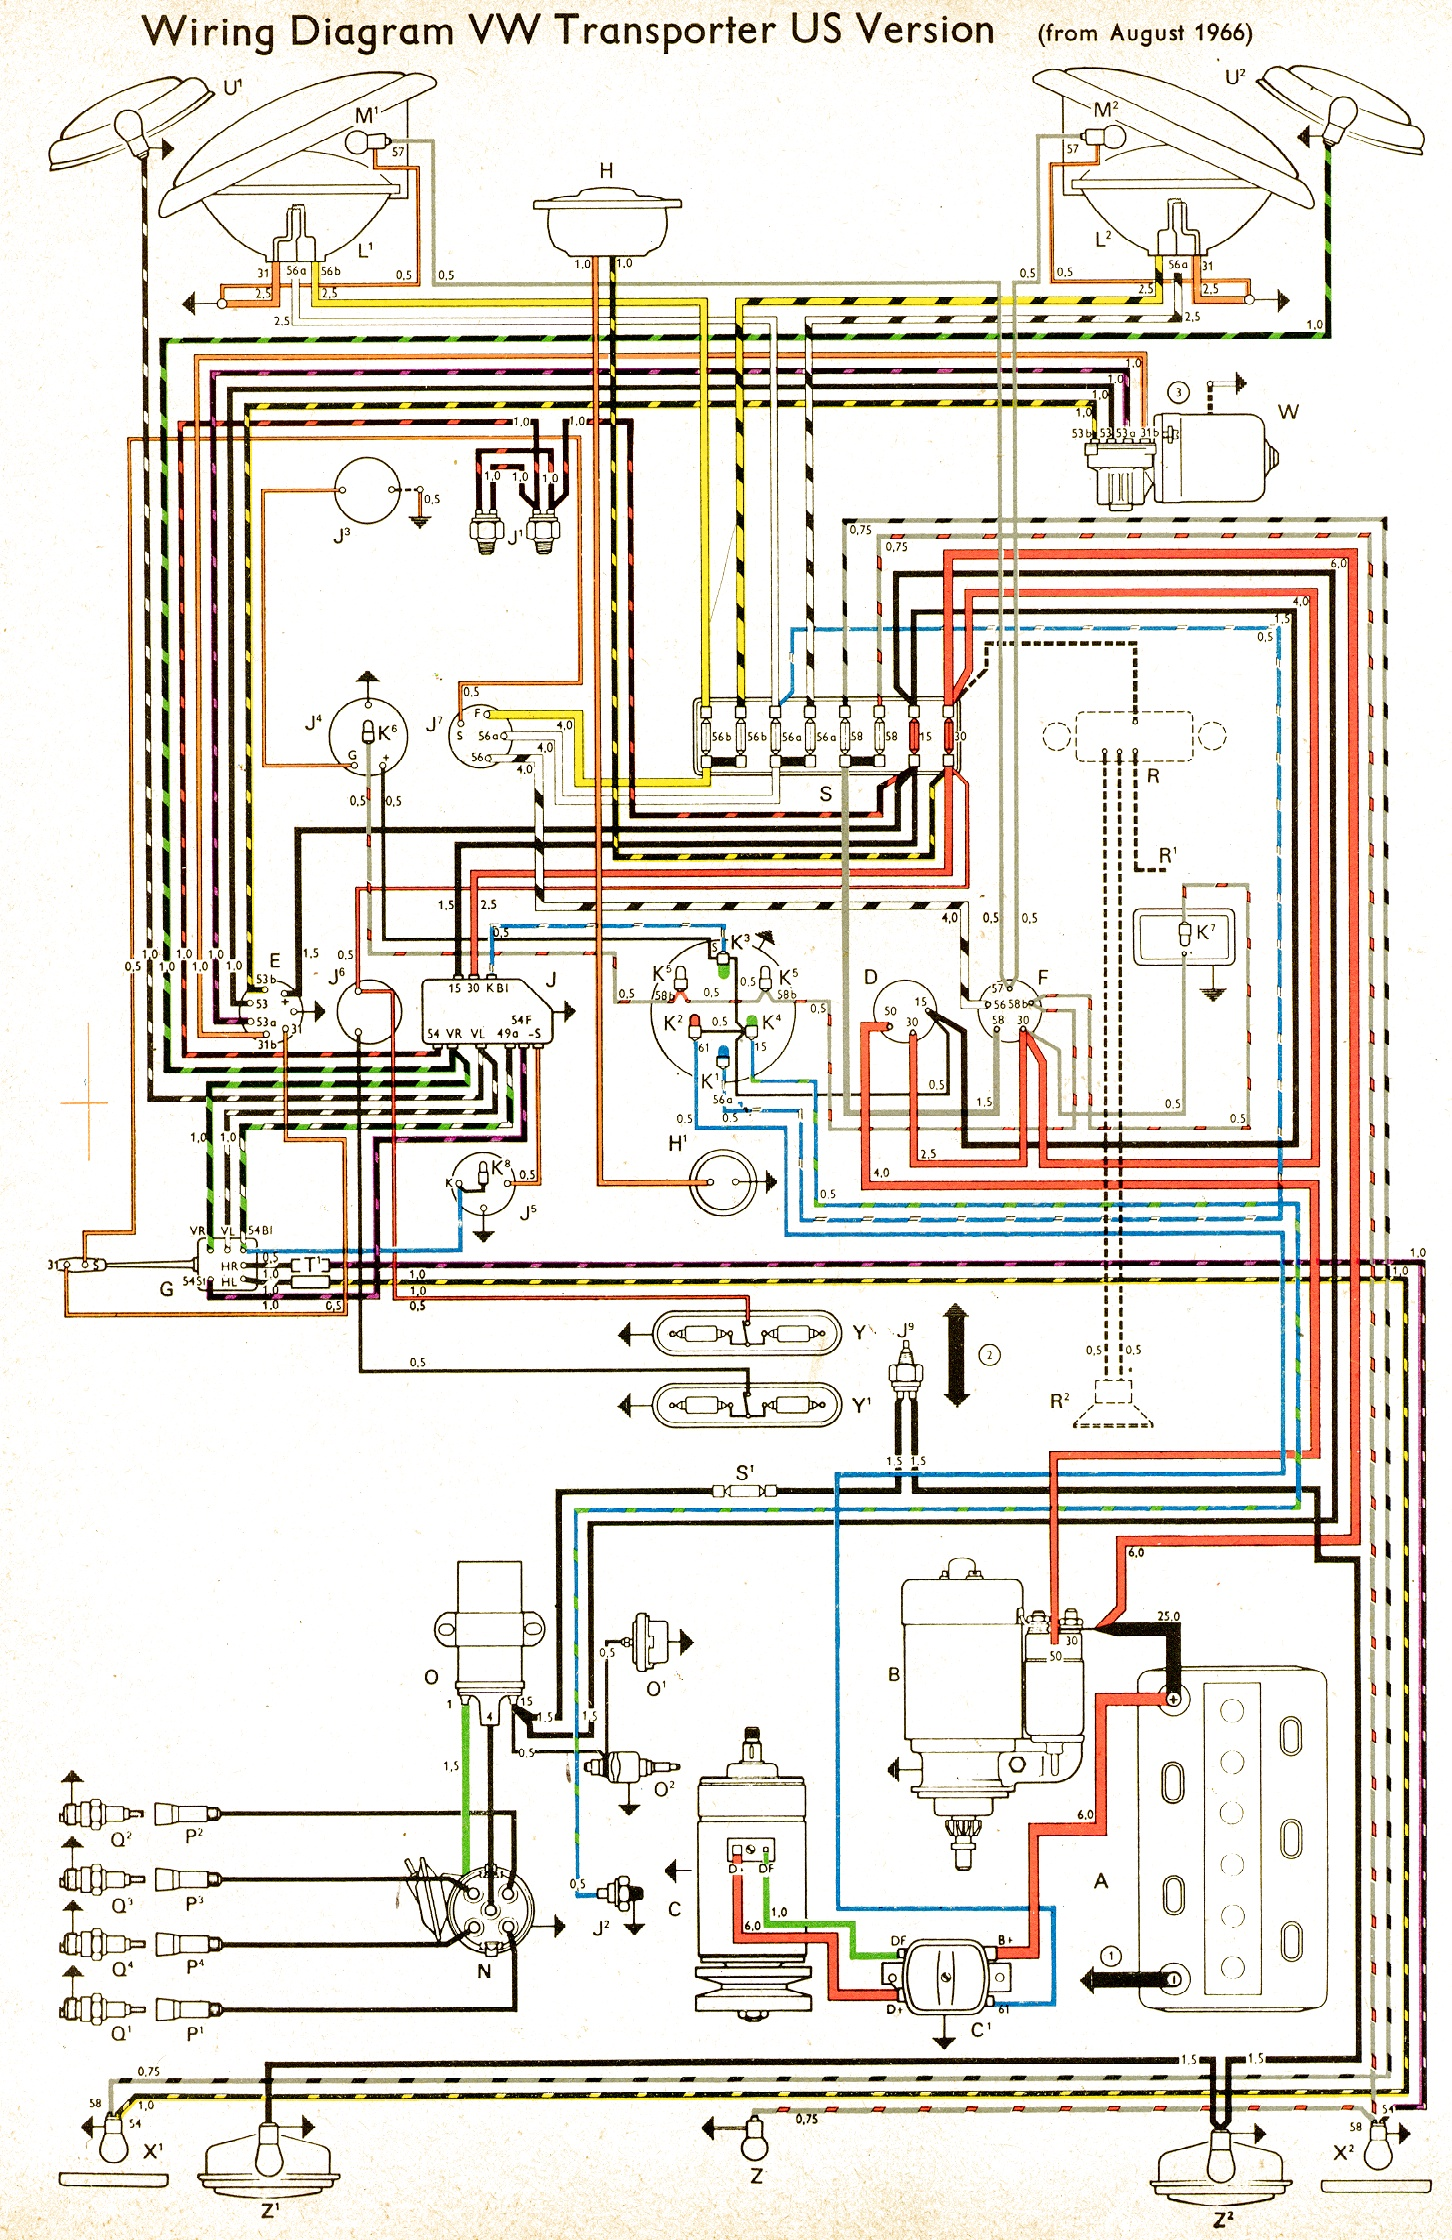 bus 66 usa vintagebus com vw bus (and other) wiring diagrams 1965 vw beetle wiring diagram at nearapp.co